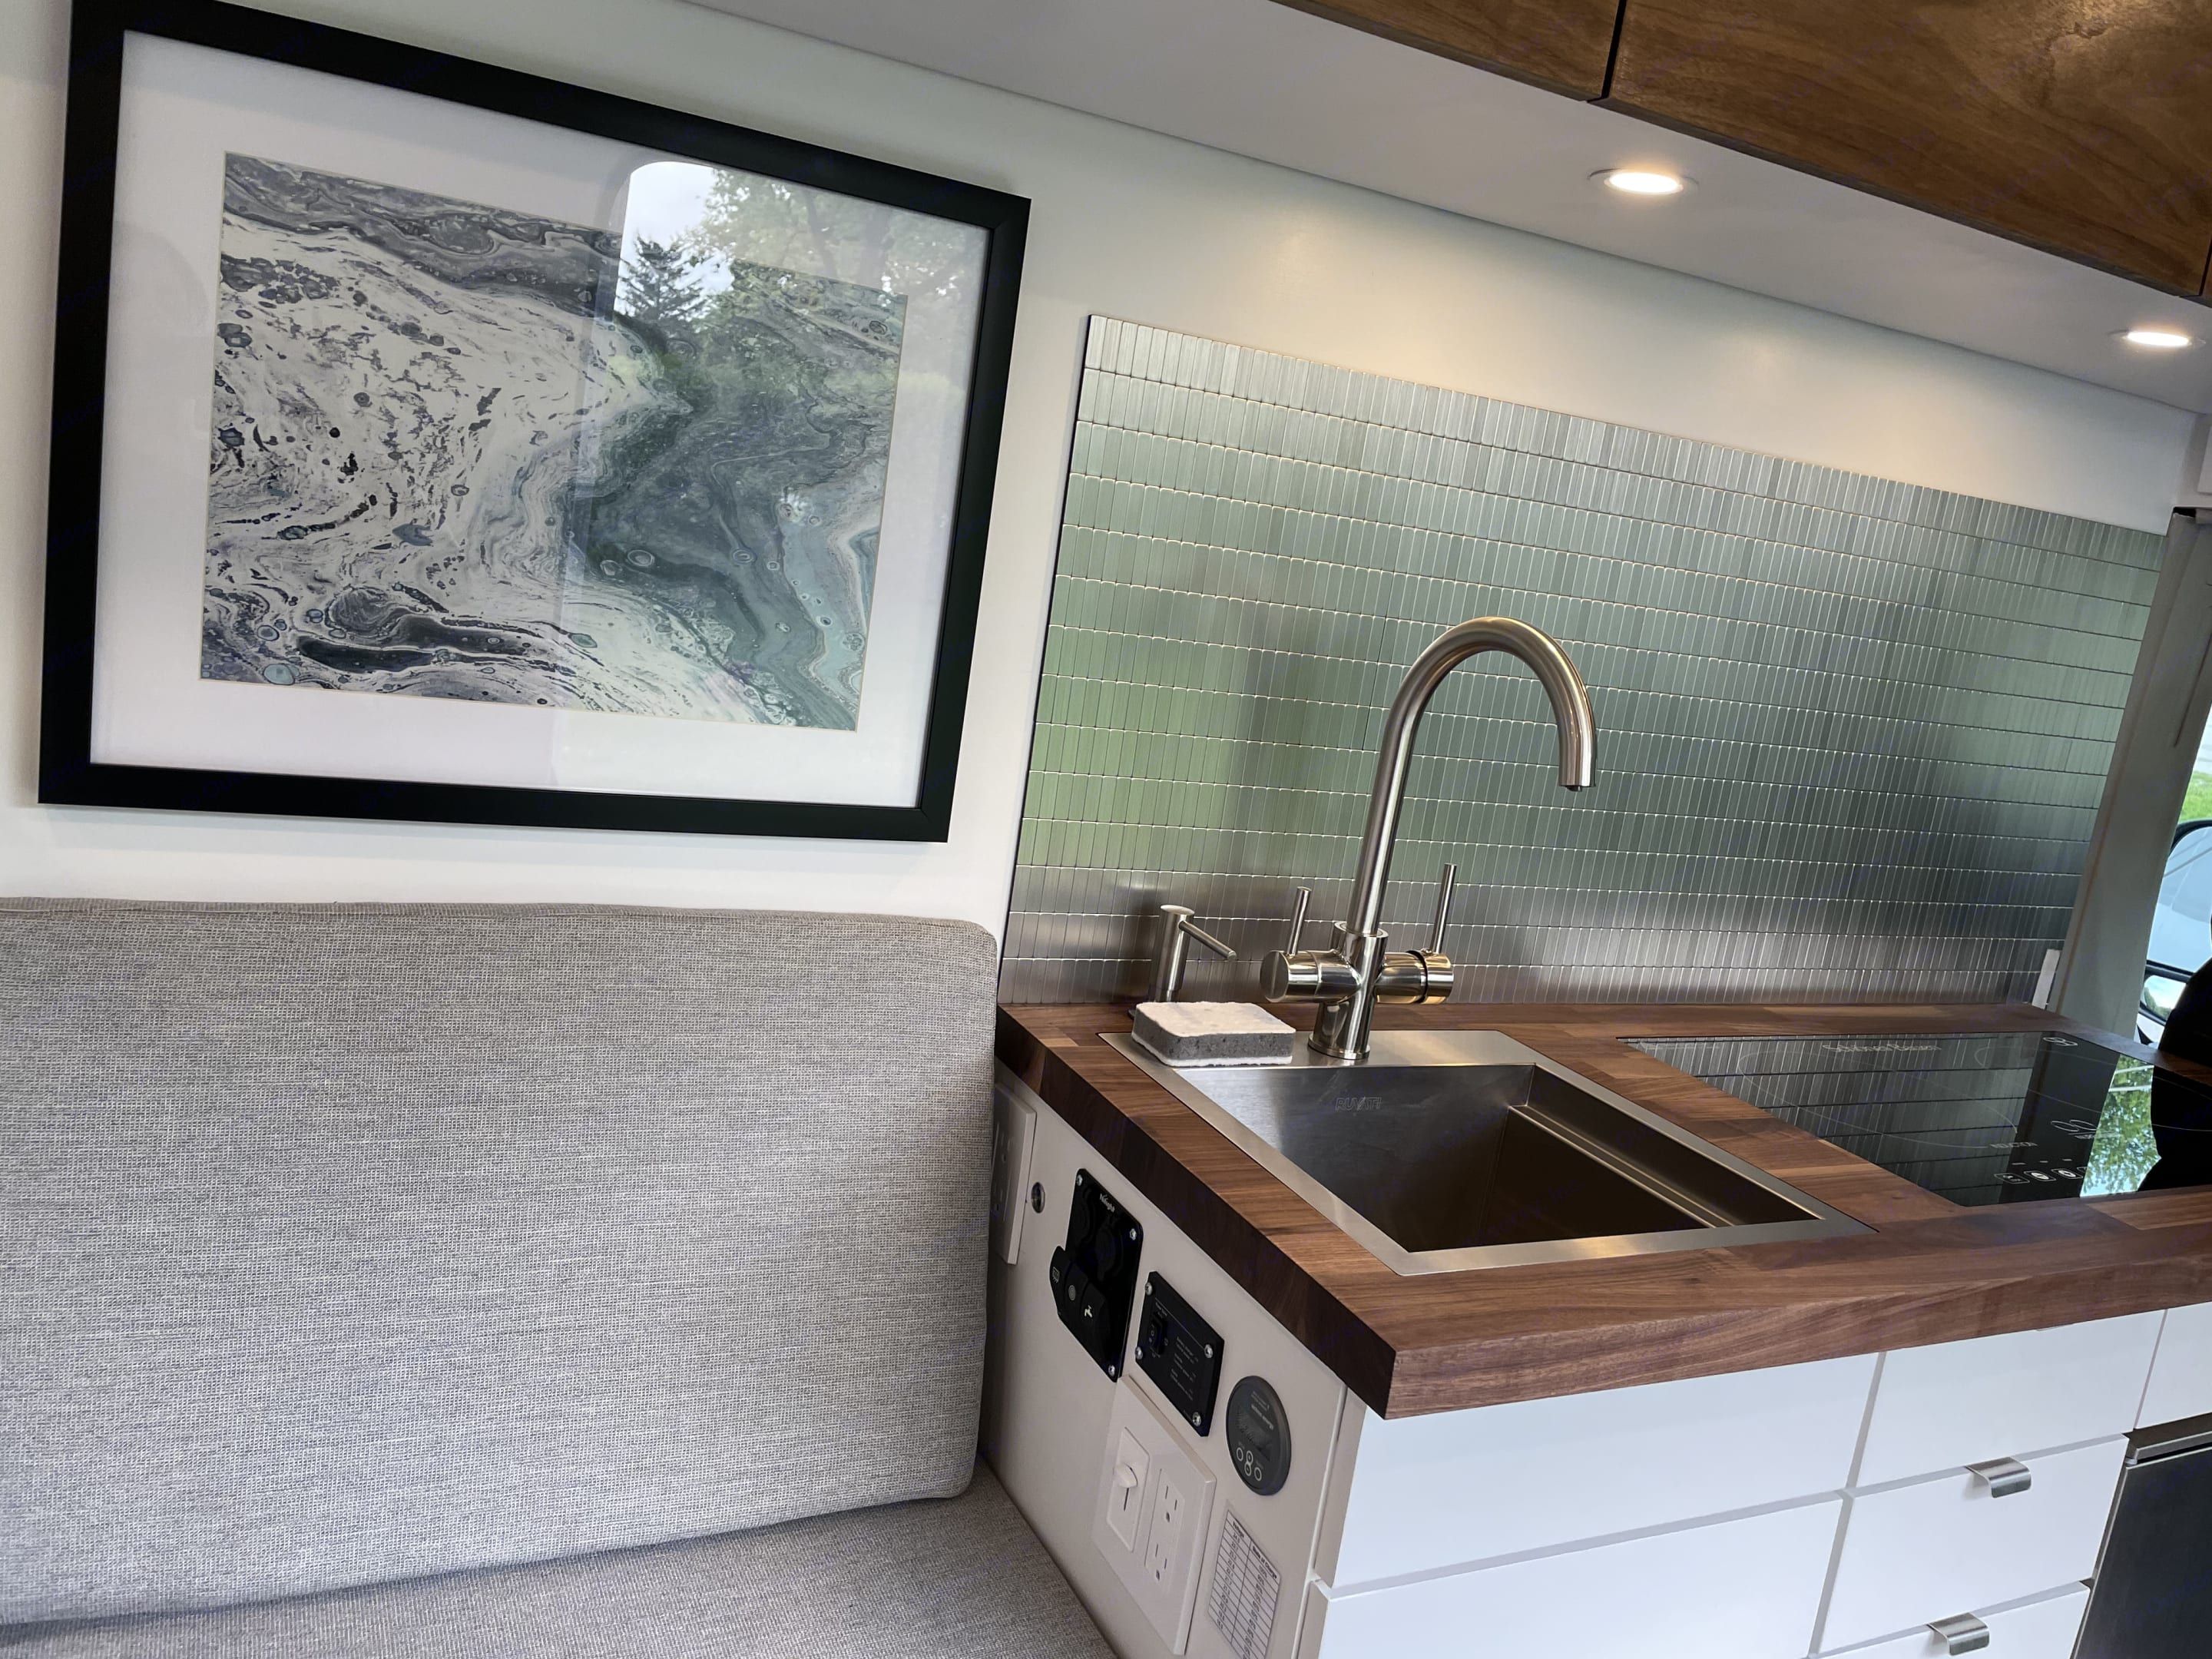 """-Deep 15""""sq. Stainless steel sink  -Dual handle faucet  -Right for washing dishes  -Left 3 stage filtered drinking water. Dodge Other 2019"""